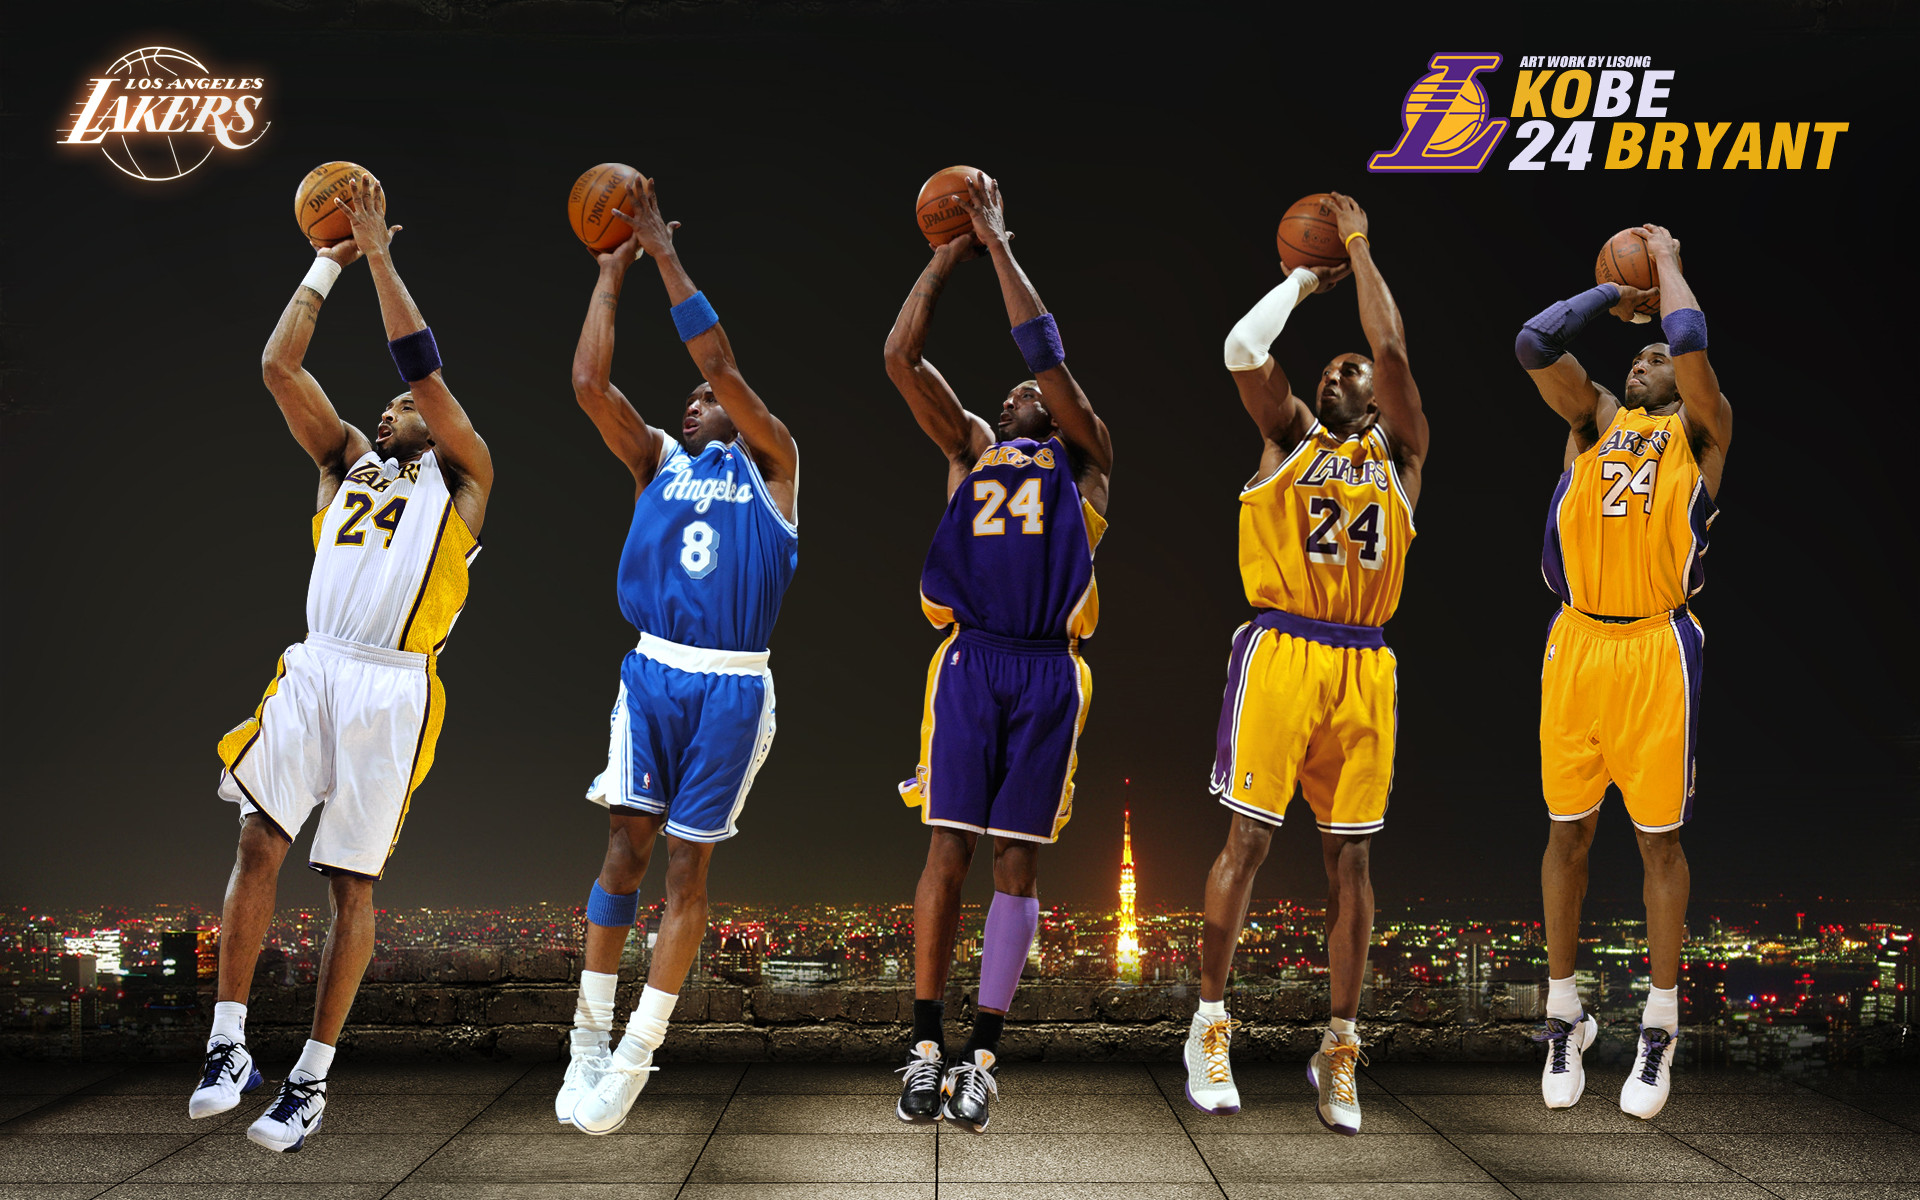 Kobe Bryant Wallpaper 24 67 Pictures